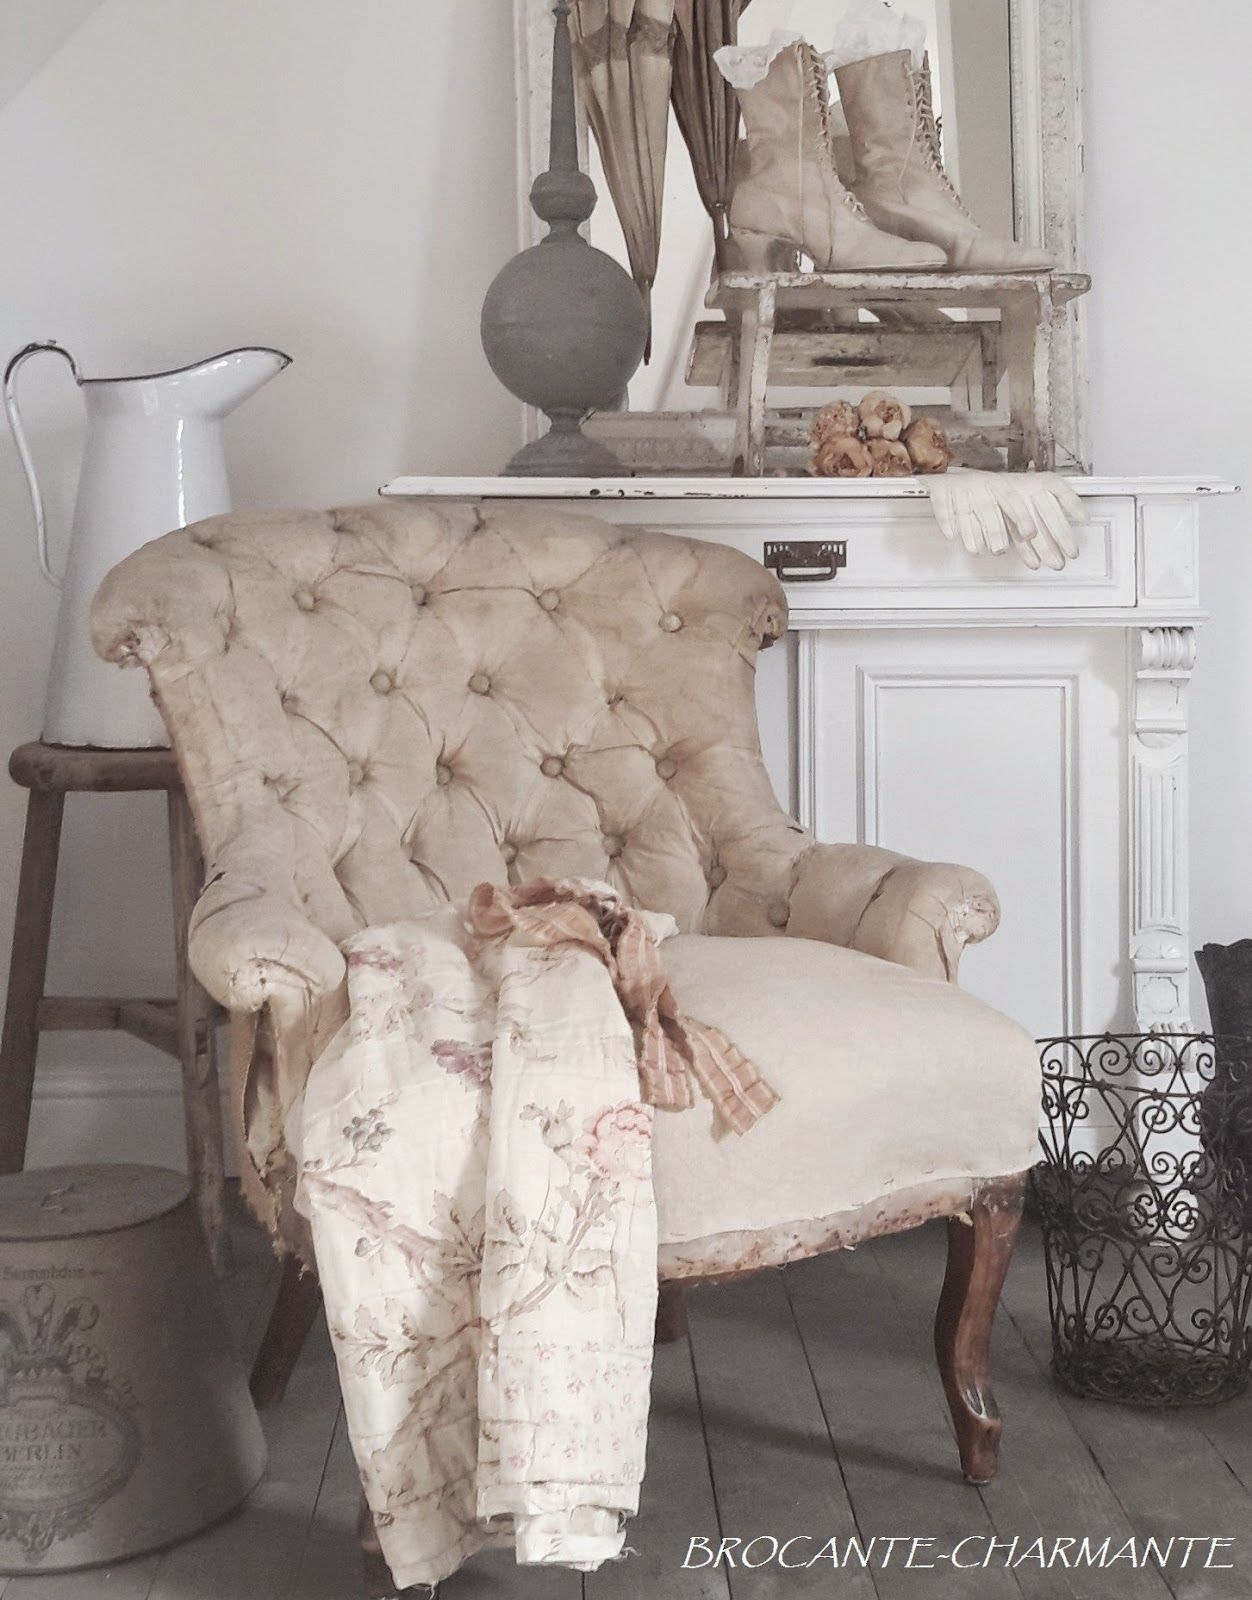 Fauteuil Shabby Chic Brocante Charmante Brocante In 2019 Brocante Fauteuil Chaise